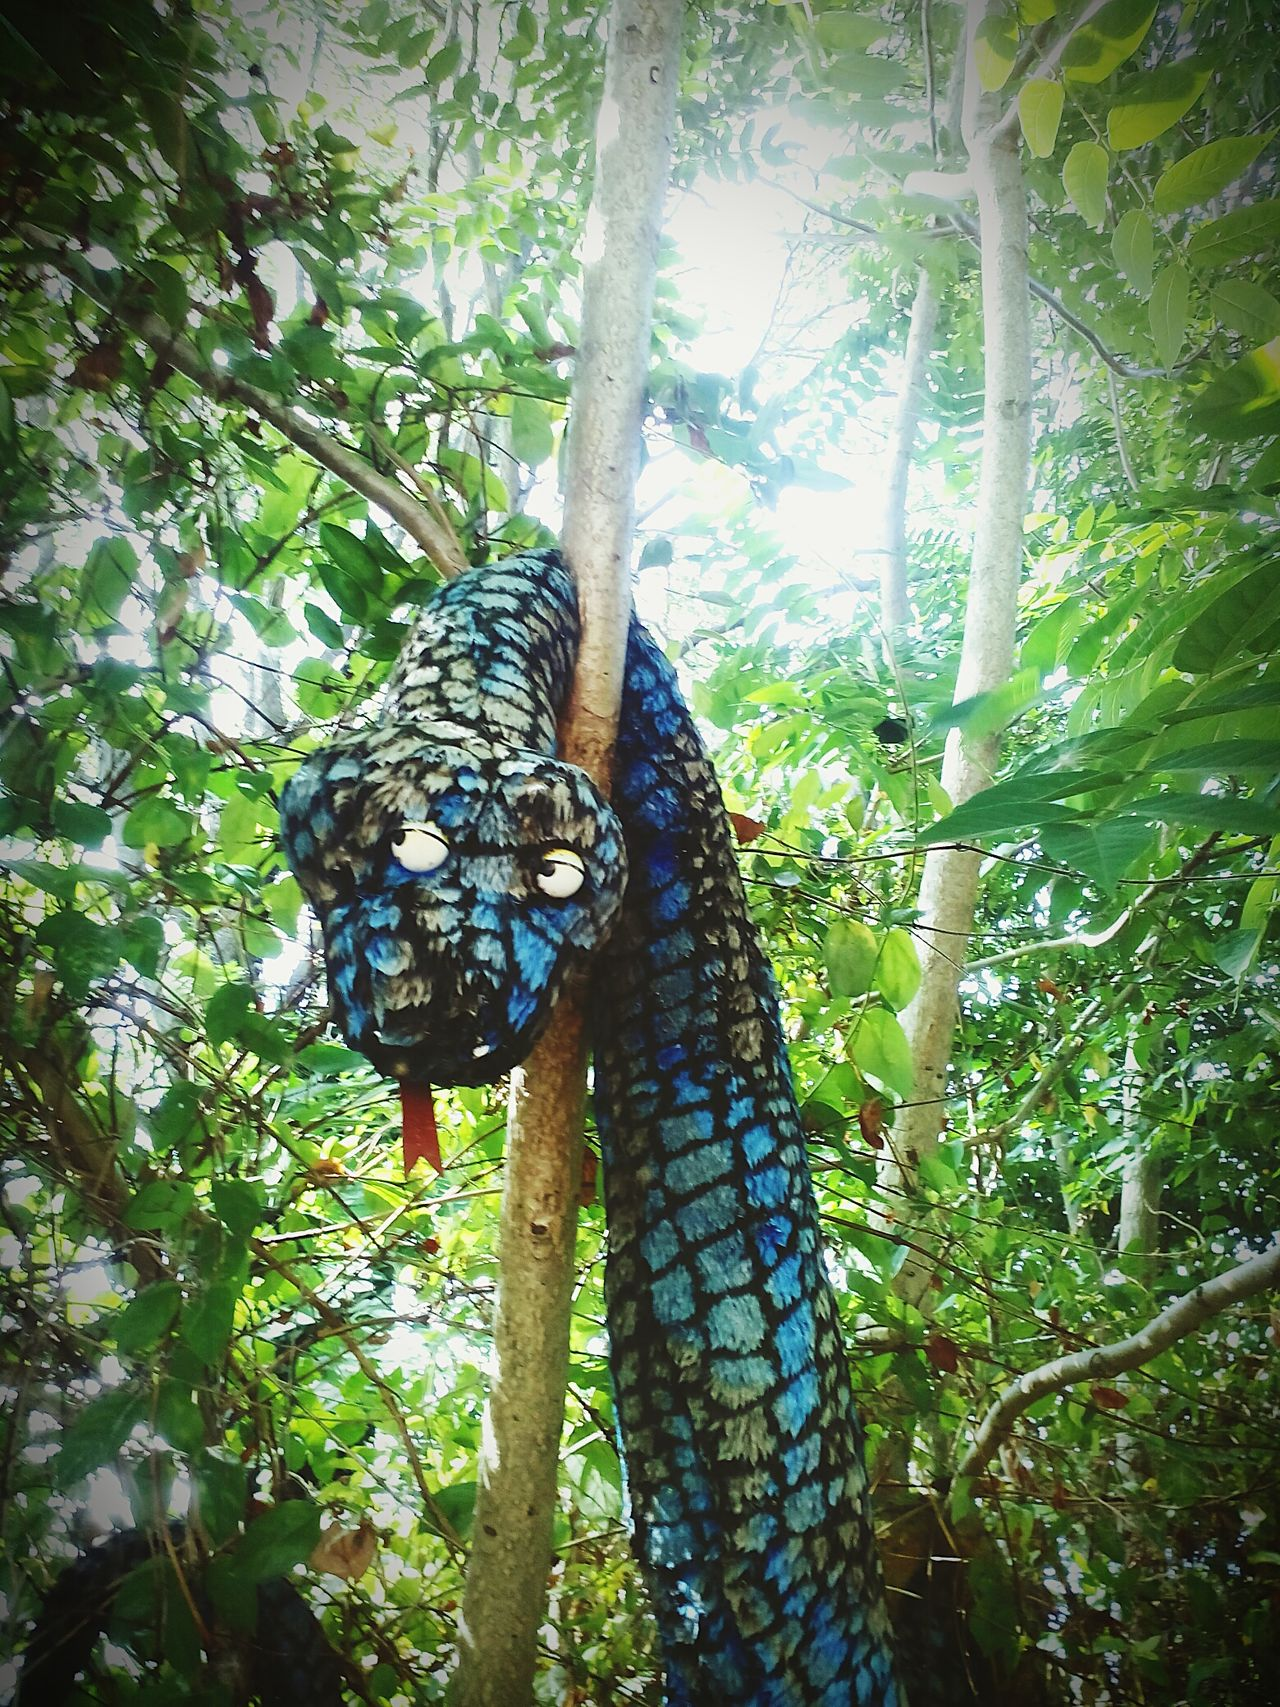 Mutonia Snake Trees Eyesofsnake Mutoid Hello World Artistic Expression Artinnature